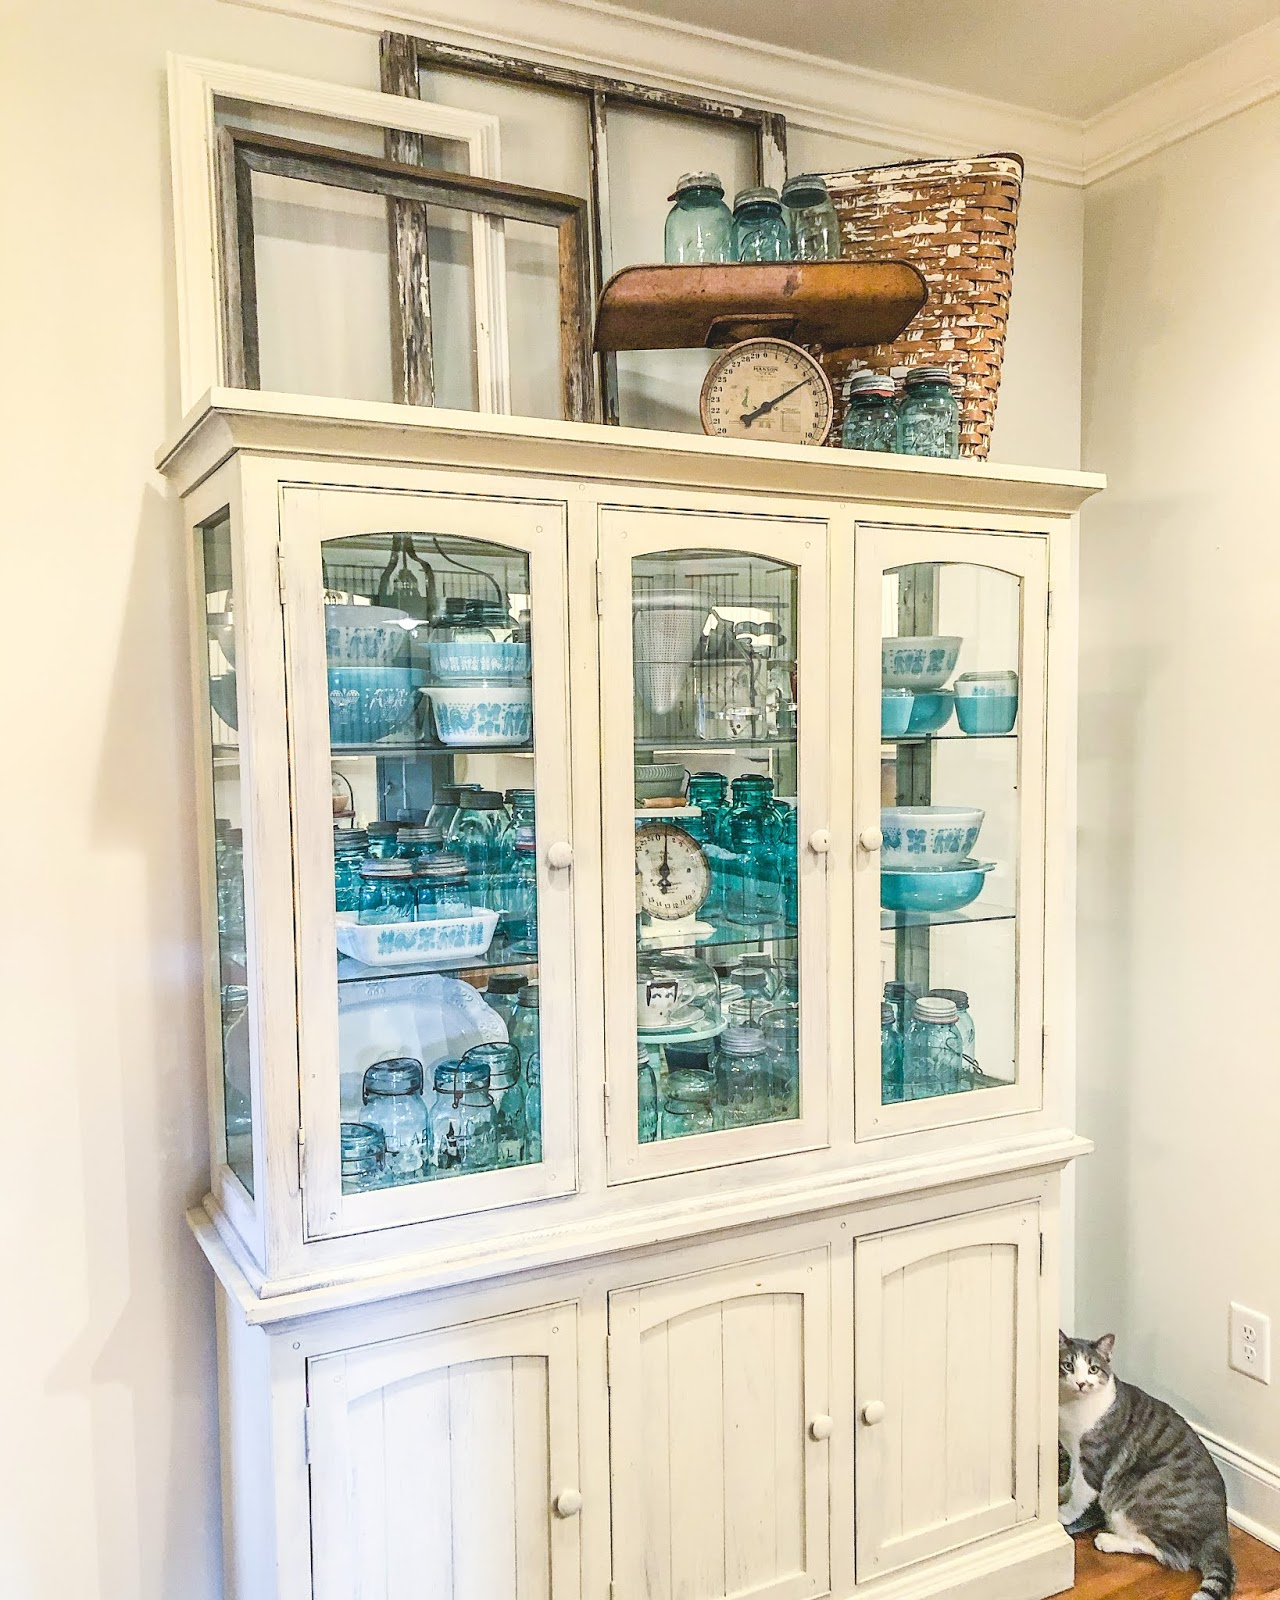 antique stores, antiquing, farmhouse decor, farmhouse, longaberger, longaberger baskets, old quilts, how to style, how to, wood shelving, home decor, farmhouse kitchen, country kitchen, country chic, mason jars, aqua mason jars, pyrex, pyrex collection, basket collection, baskets,